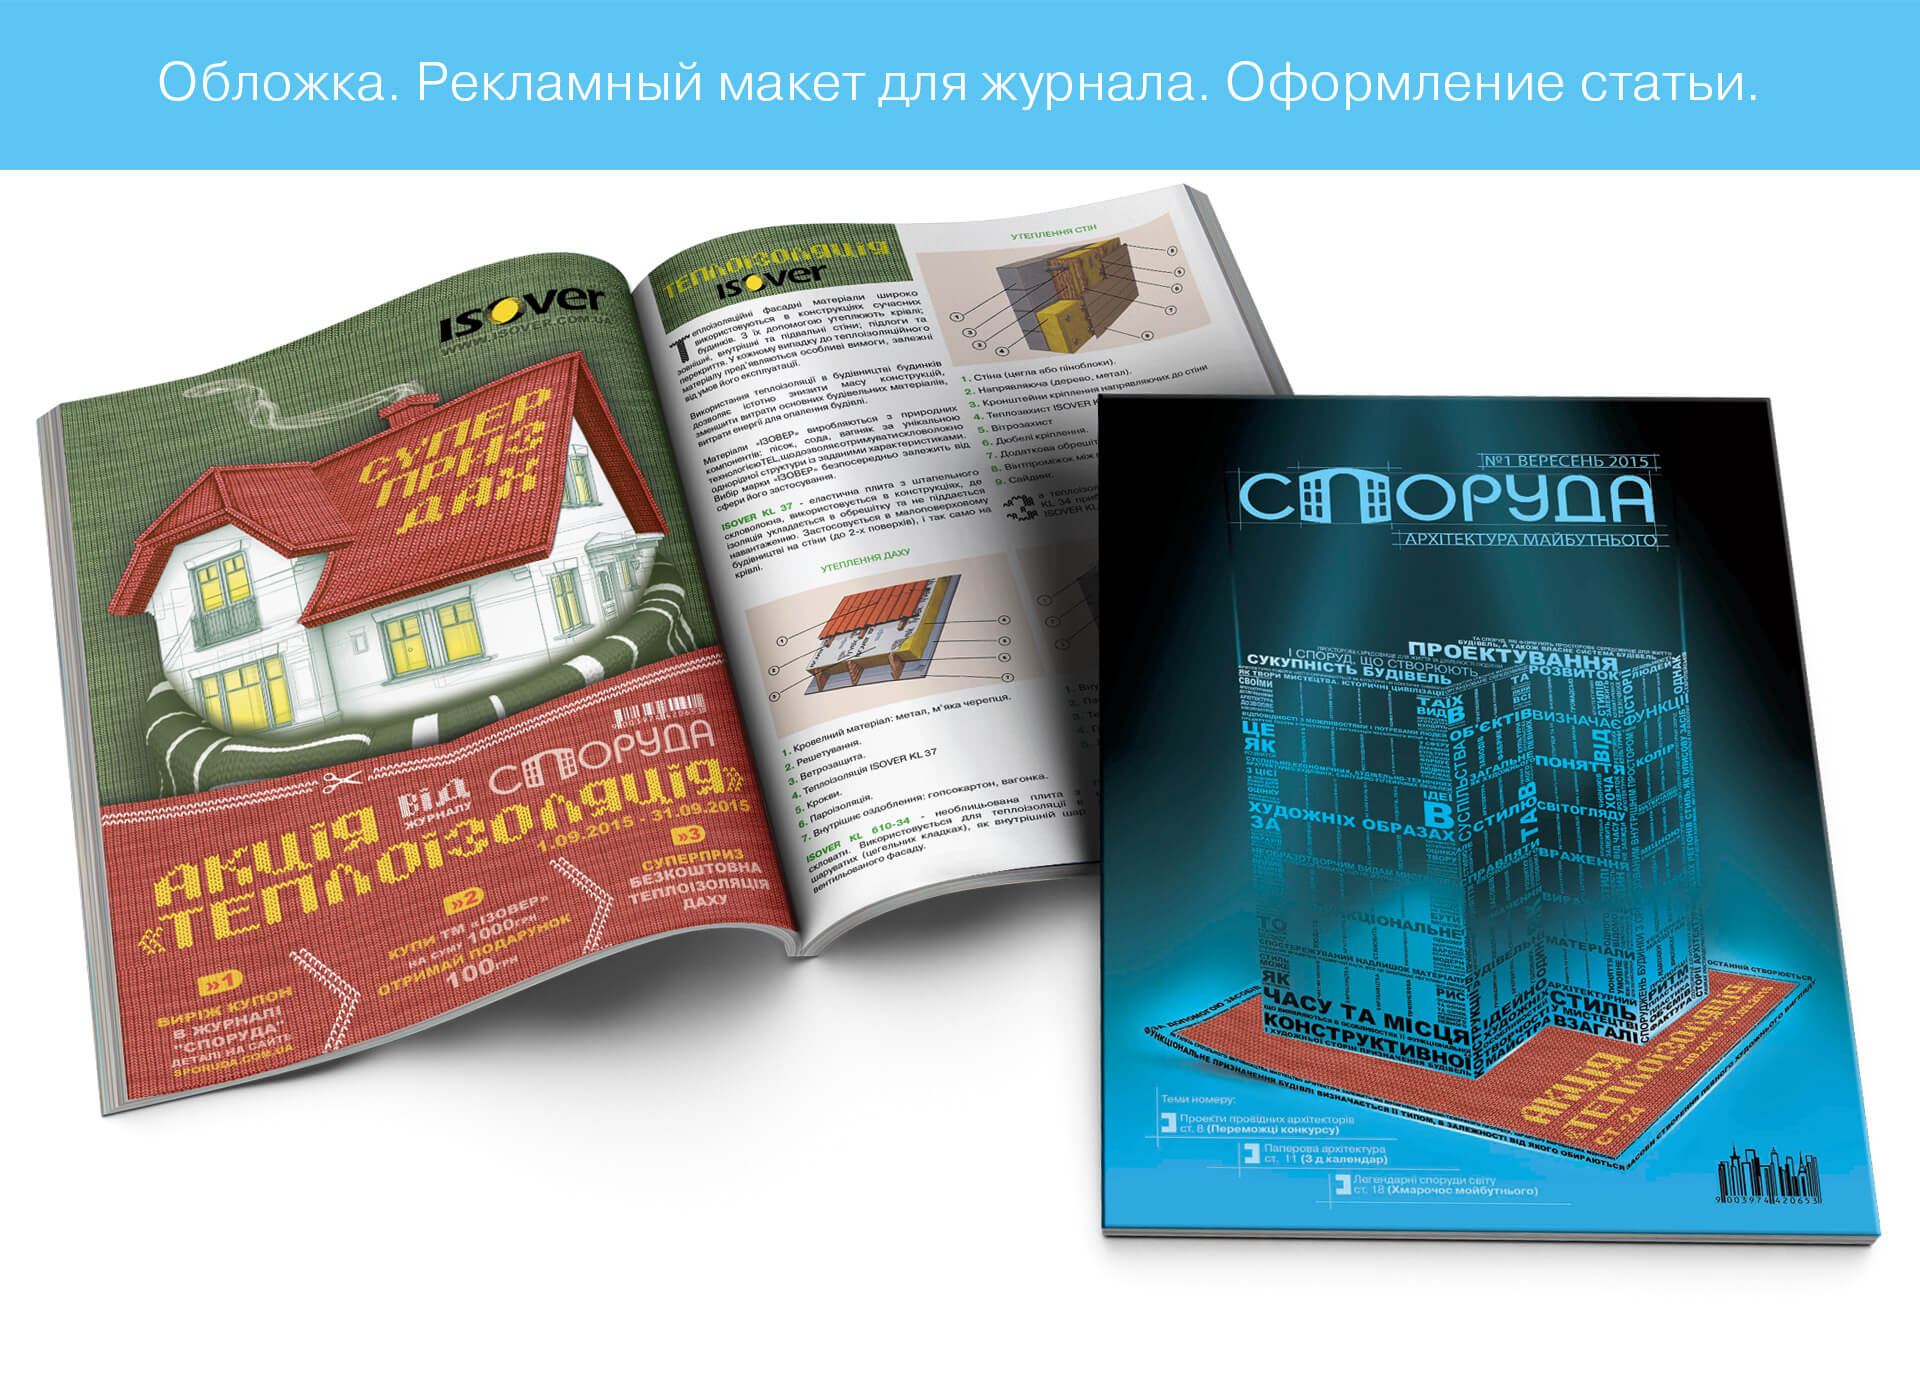 prokochuk_irina_architectural-magazine-sporuda_advertising-campaign_1